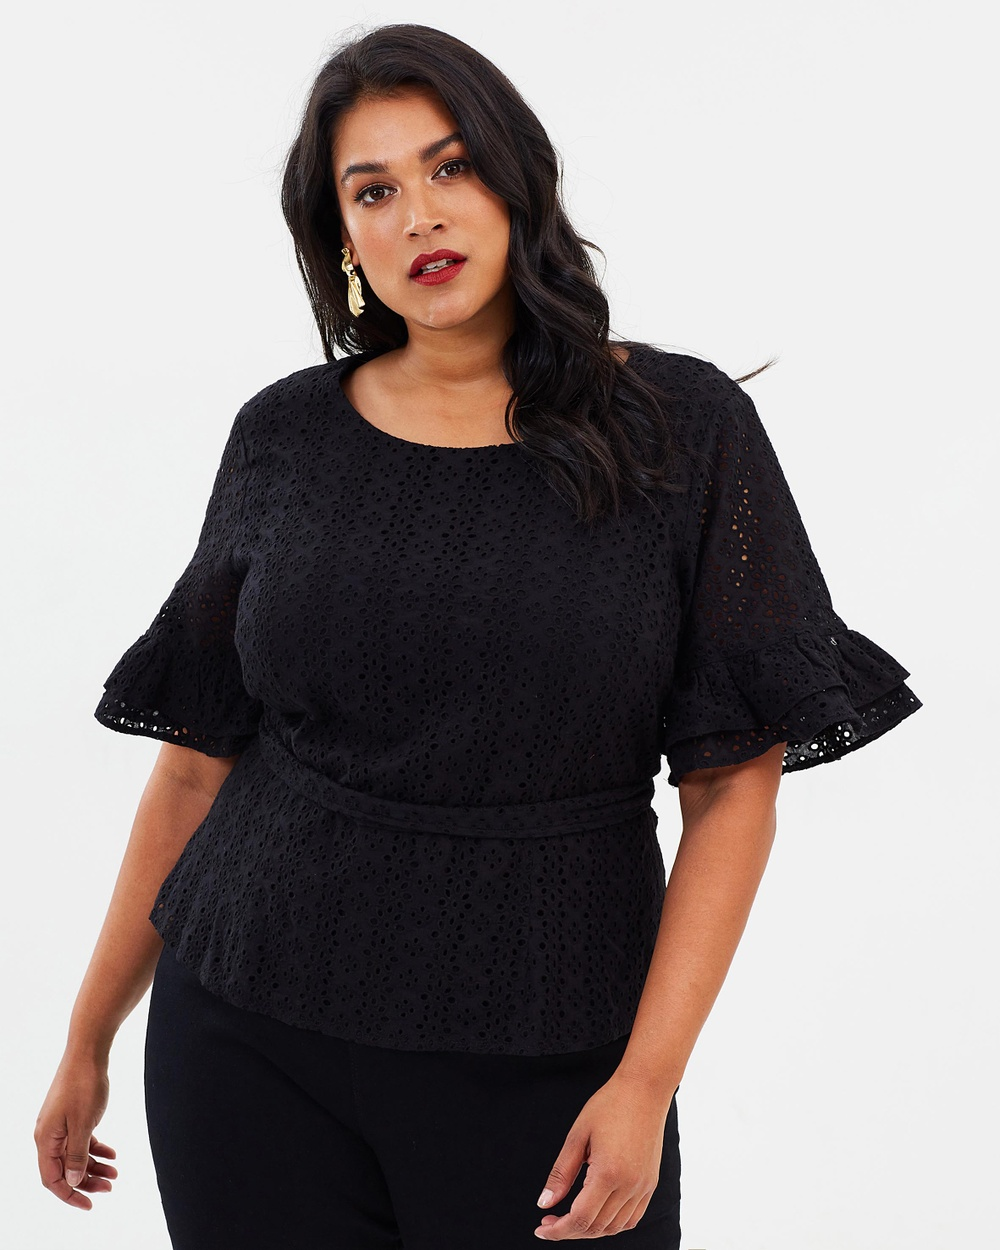 Atmos & Here Curvy ICONIC EXCLUSIVE Bianca Broidery Top Tops Black ICONIC EXCLUSIVE Bianca Broidery Top